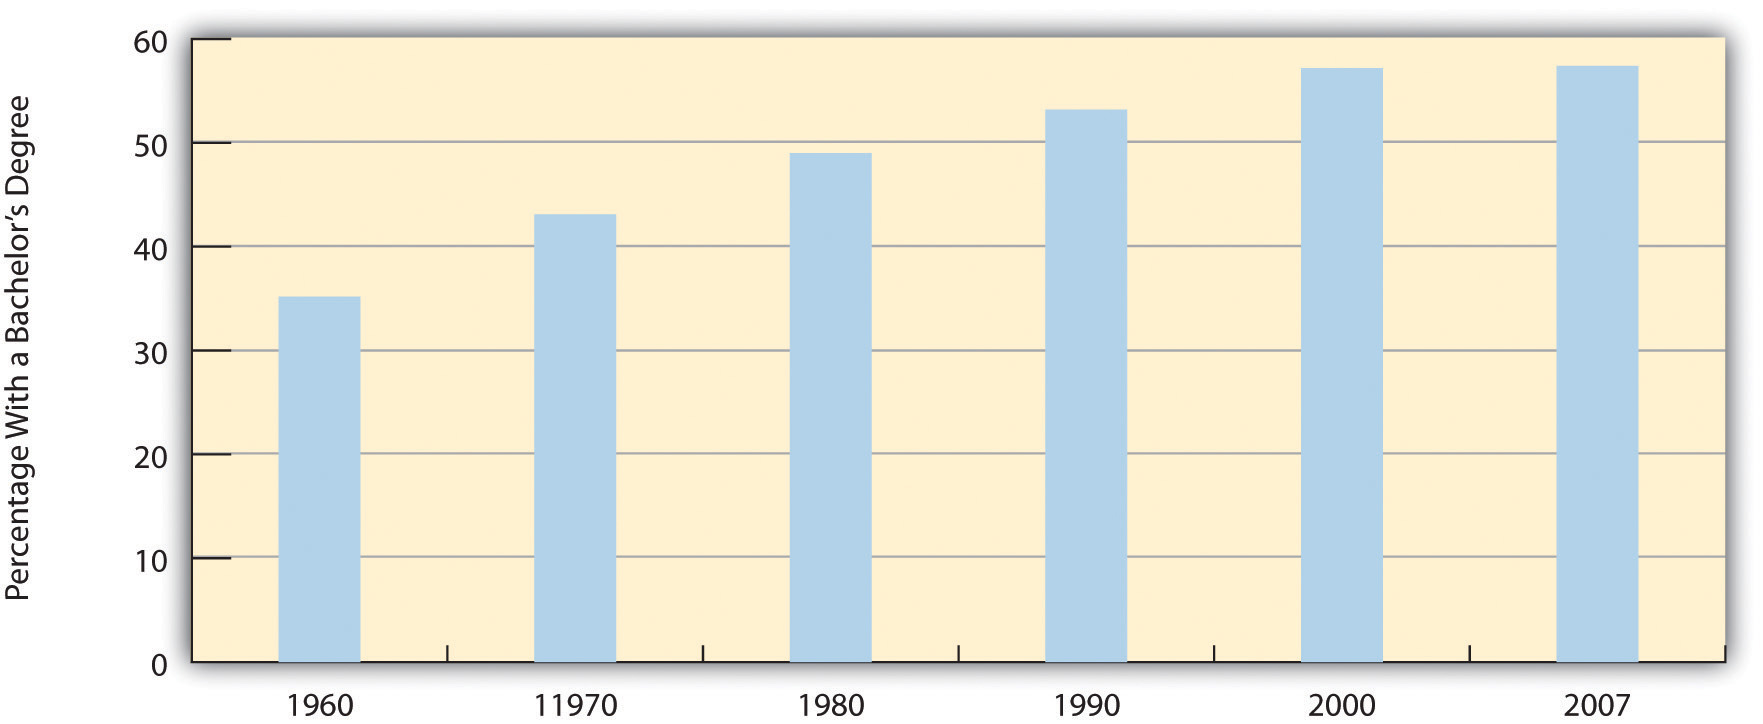 Percentage of All Bachelor's Degrees Received by Women, 1960-2007